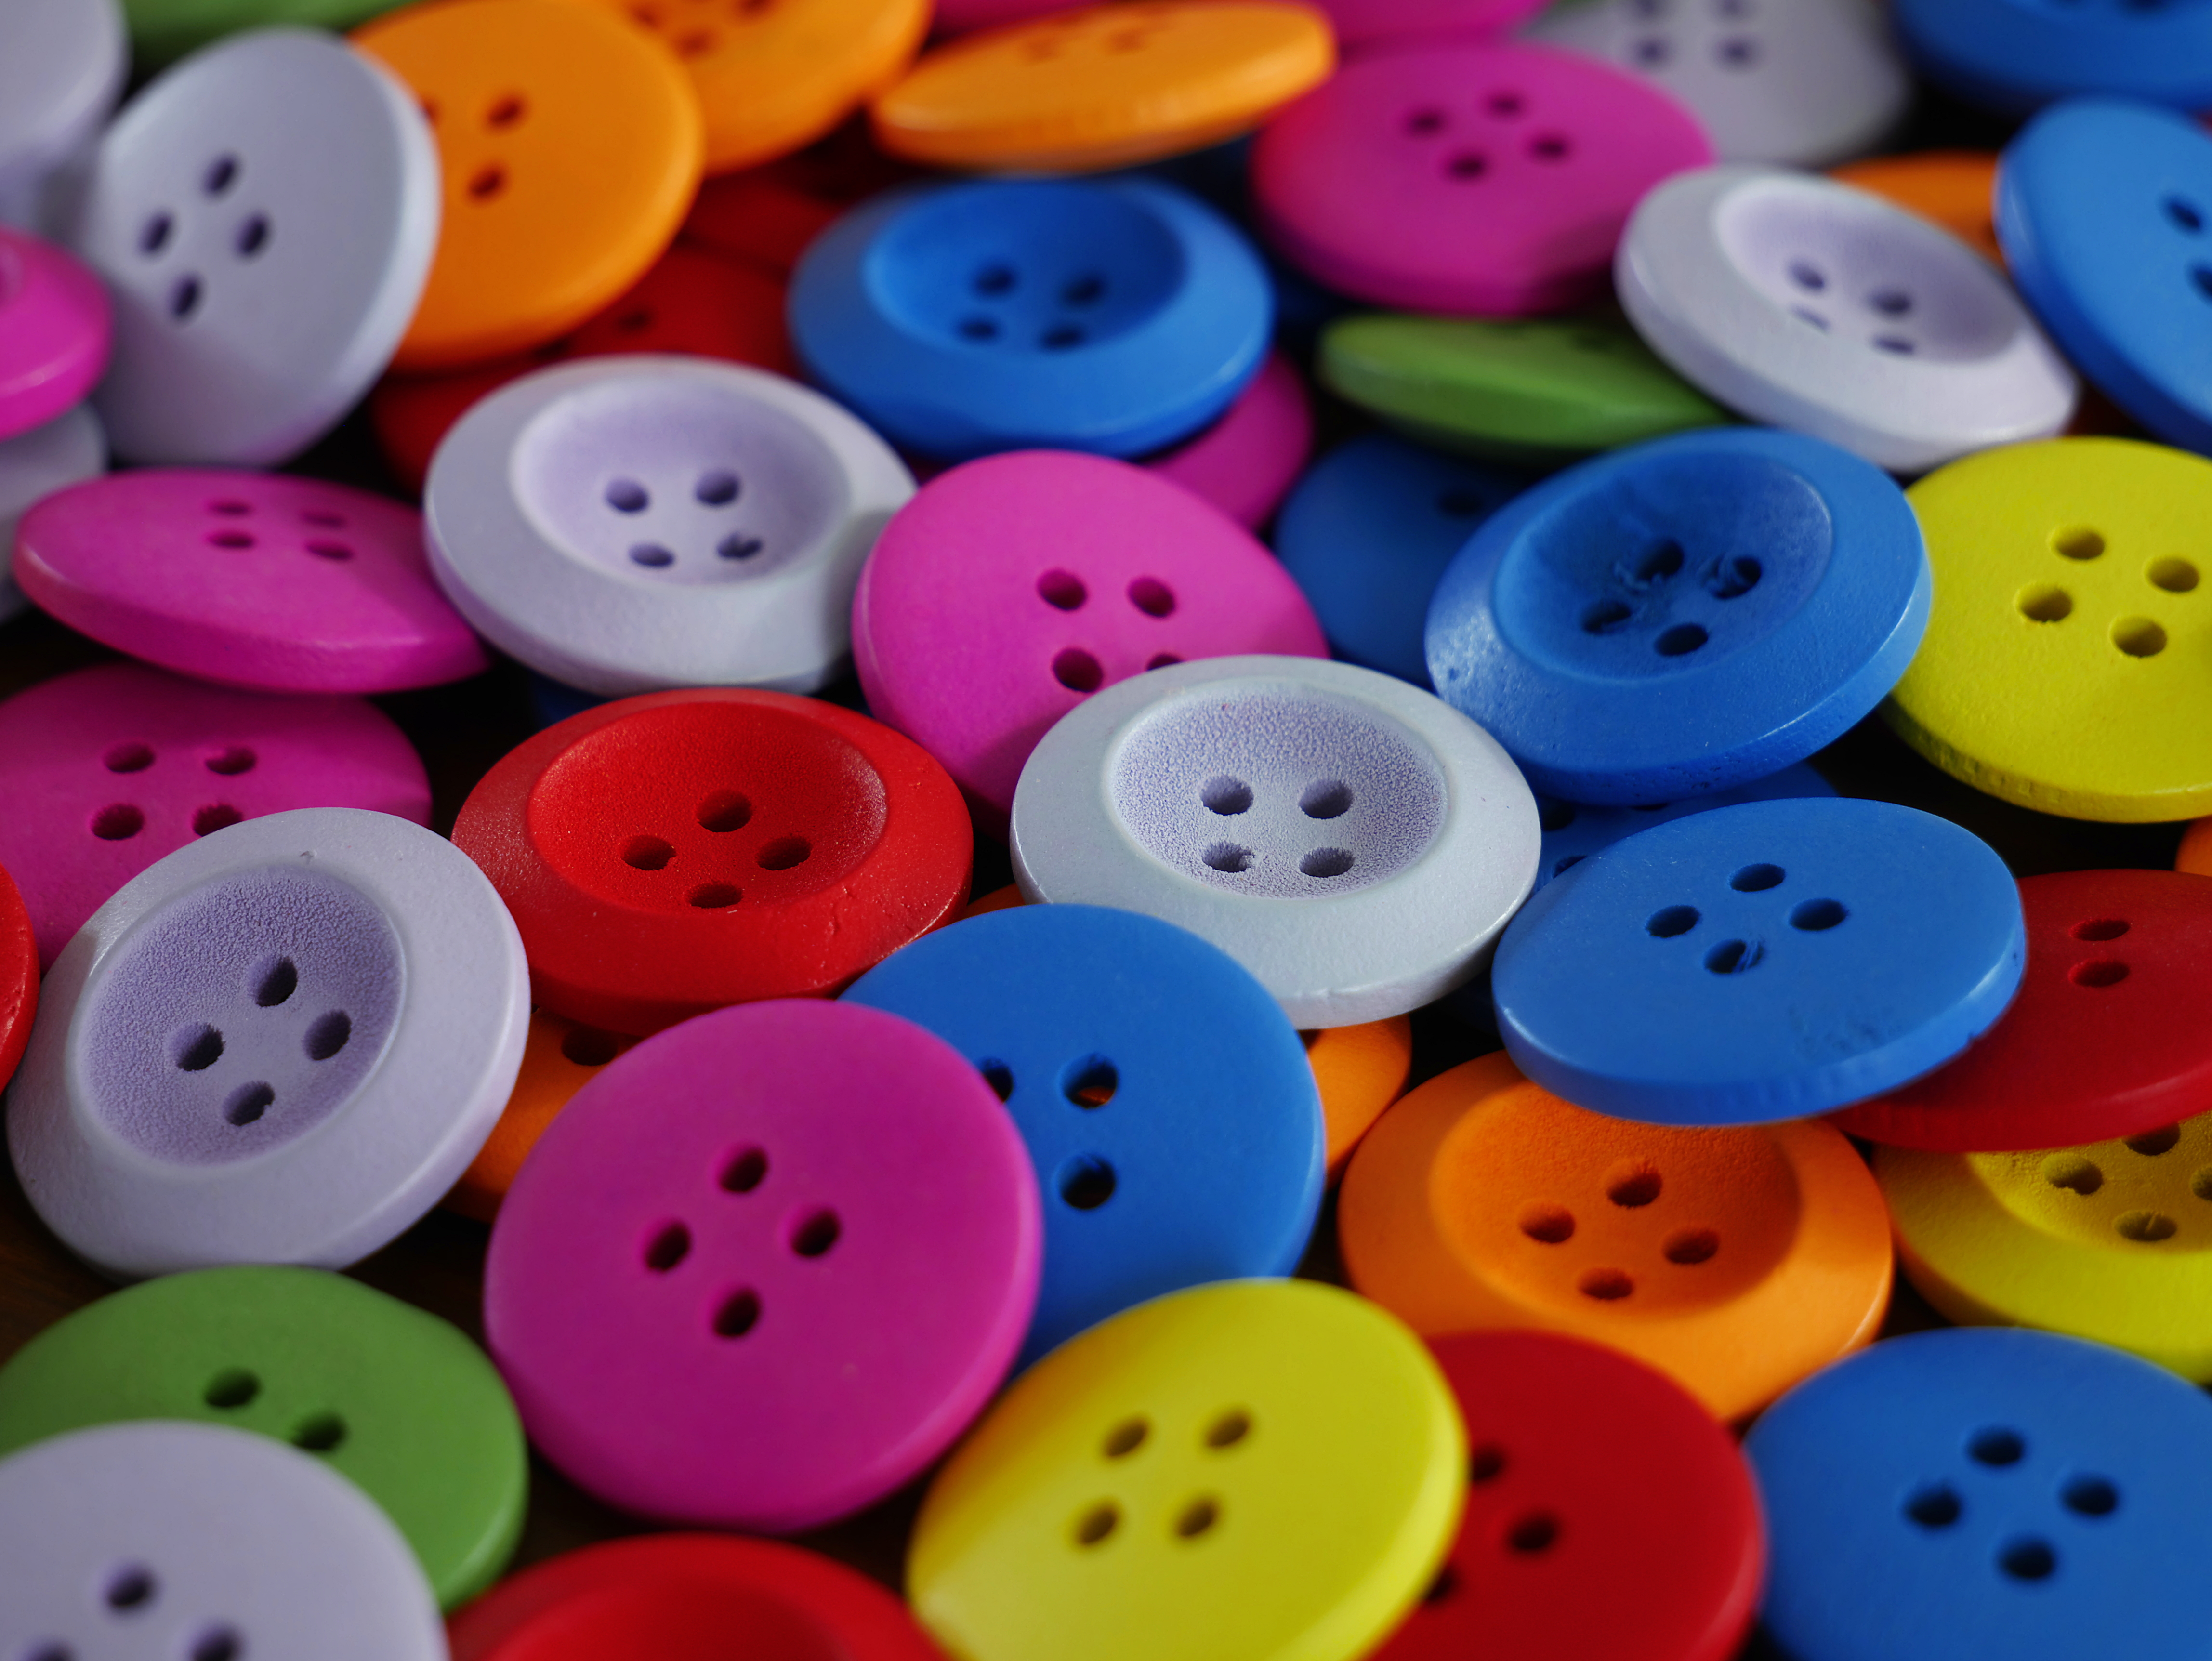 File:Plastic buttons 20190306 jpg - Wikimedia Commons